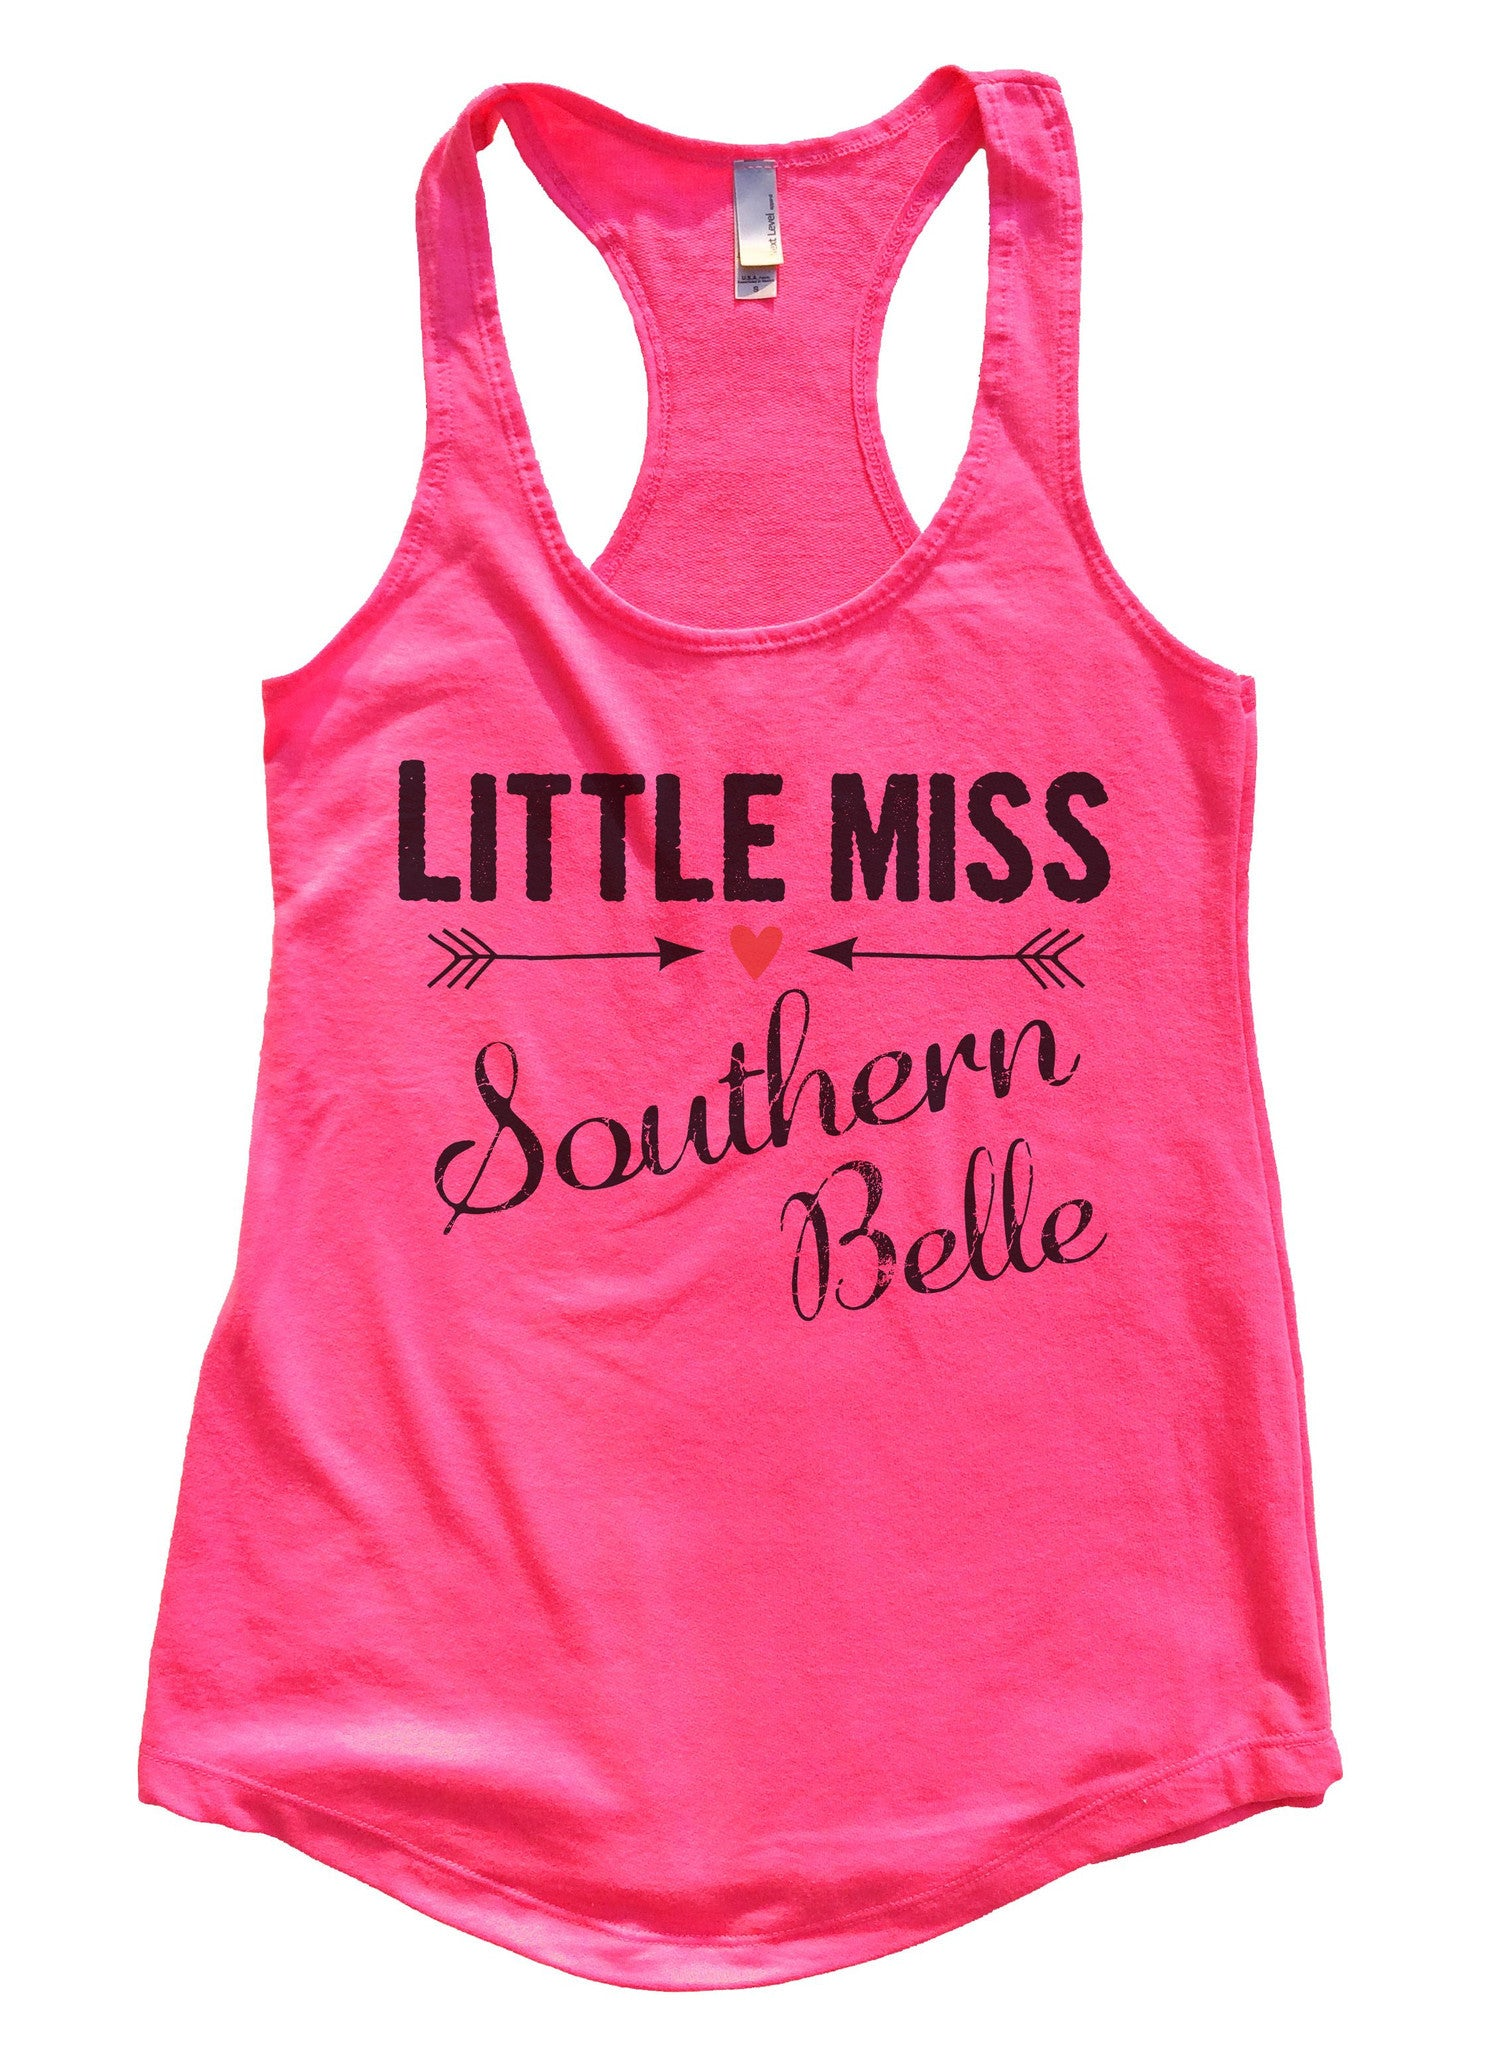 Little Miss Southern Belle Womens Workout Tank Top F786 - Funny Shirts Tank Tops Burnouts and Triblends  - 5